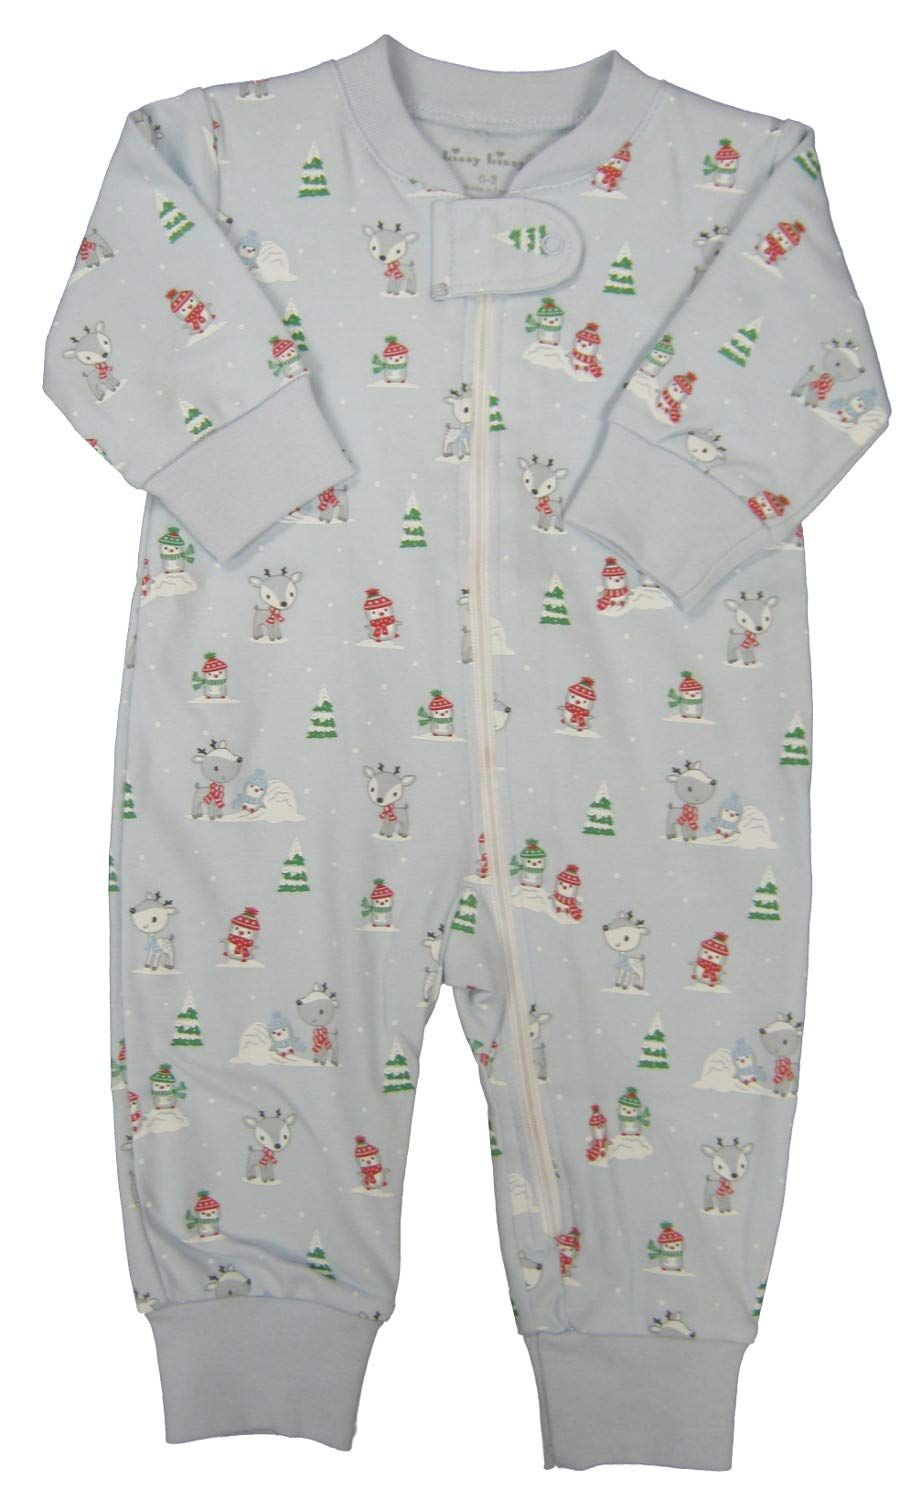 Kissy Kissy Babyboys Infant Snow Day Print Playsuit With Zipperblue03 Months See This Fantastic Item This Is With Images Boy Outfits Baby Girl Pajamas Print Playsuit